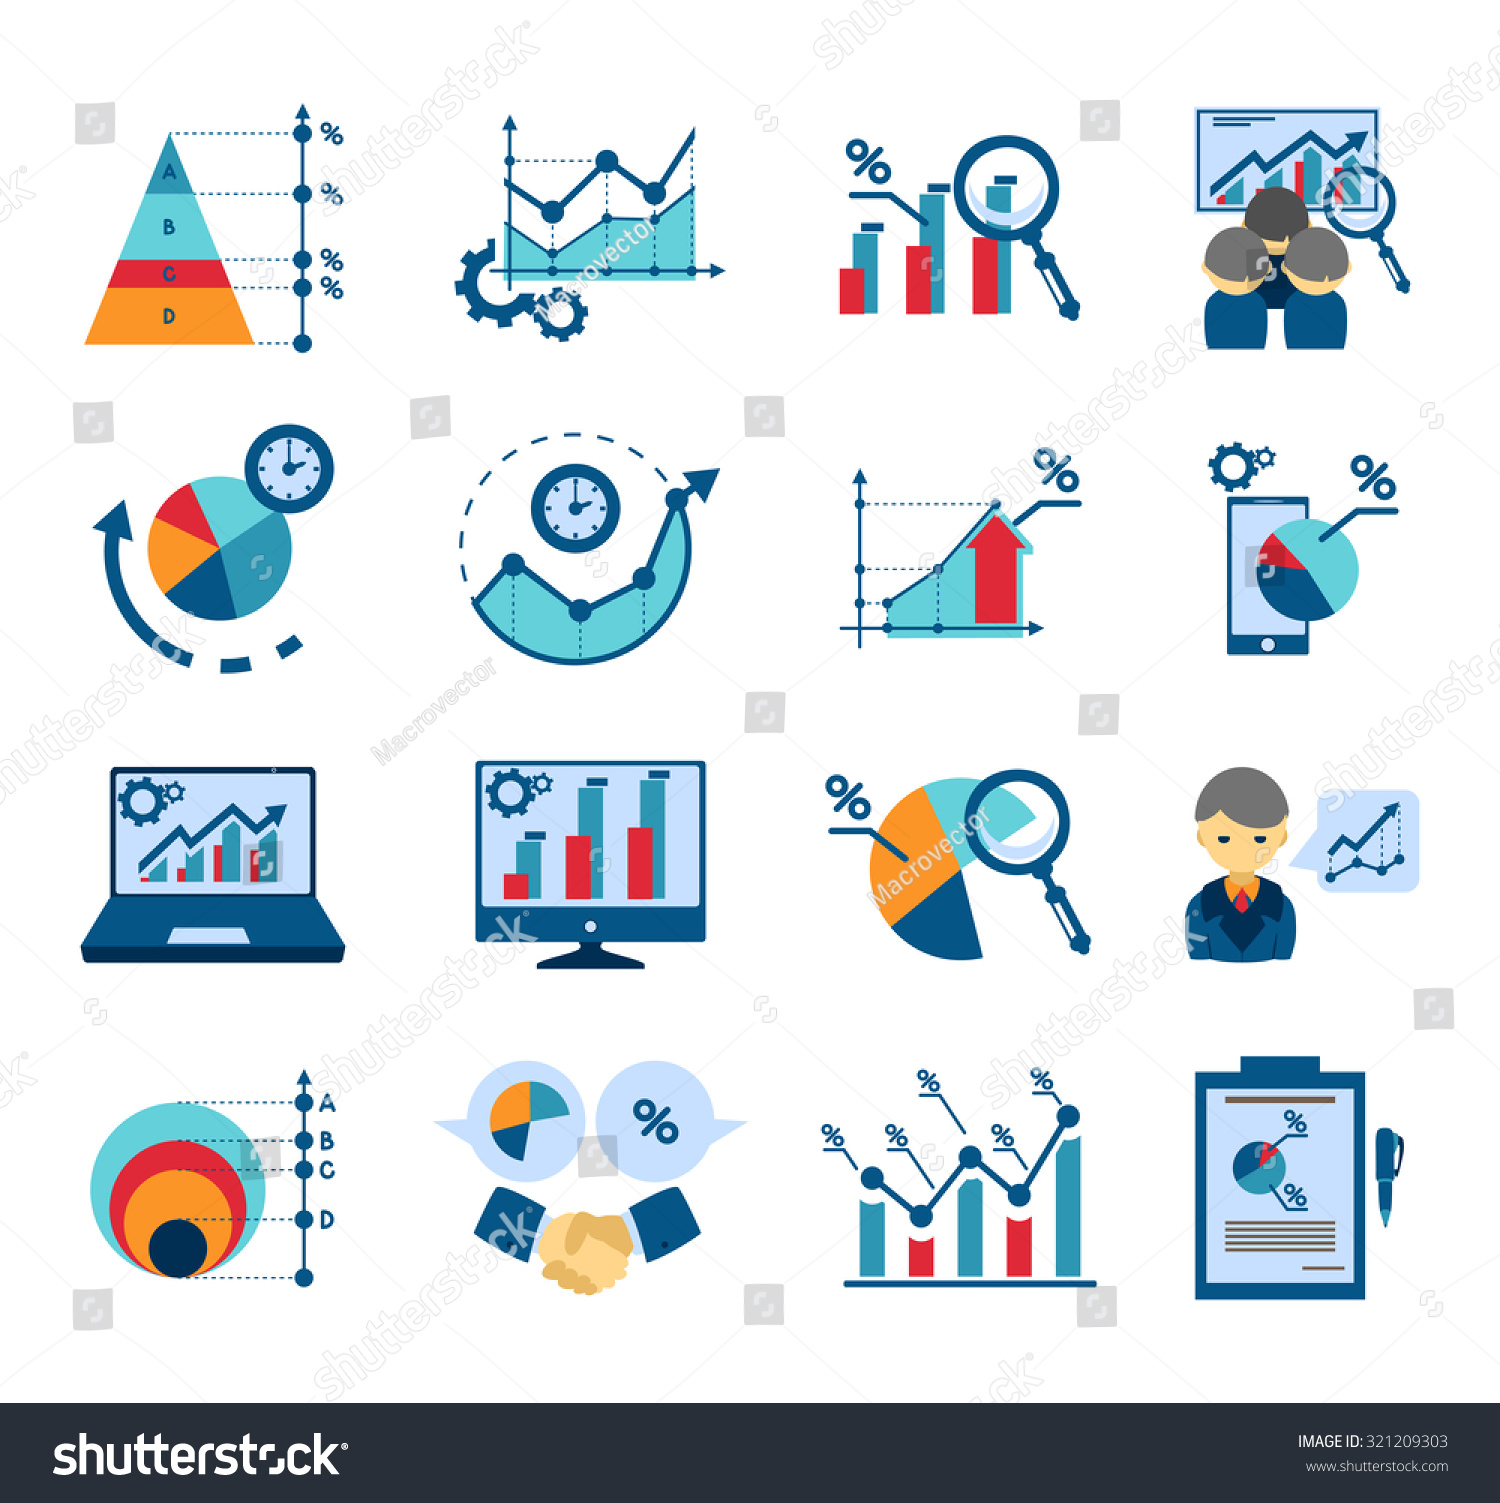 Data Analysis Techniques Effective Business Management Stock ...